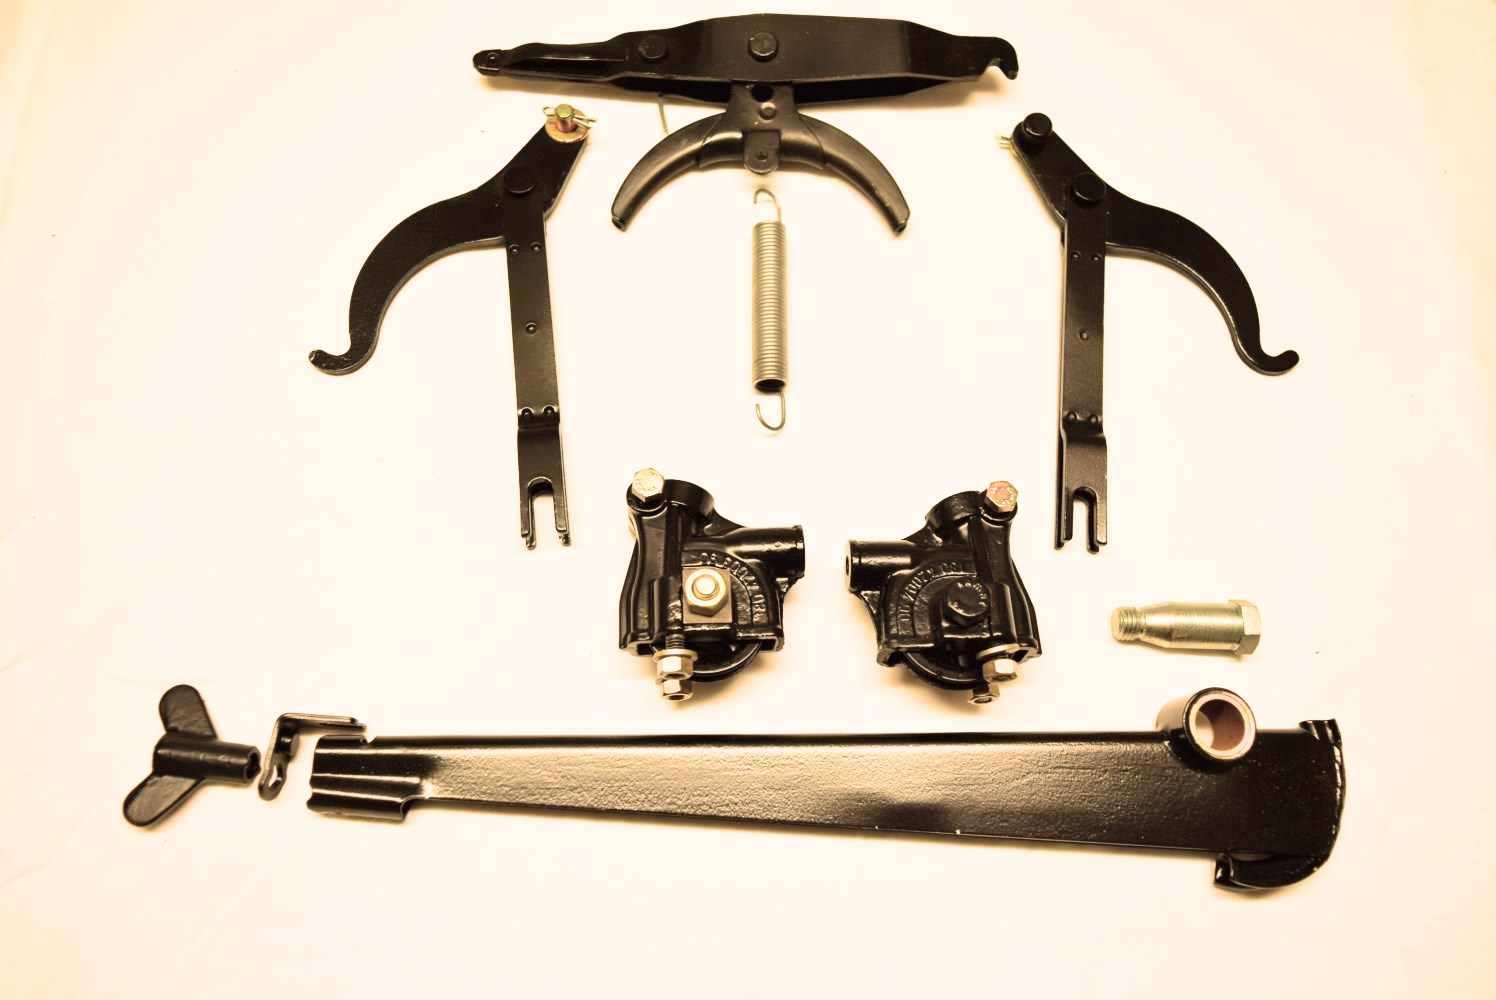 Restored brake levers, compensating lever and cable guide for a Mercedes 219 Ponton